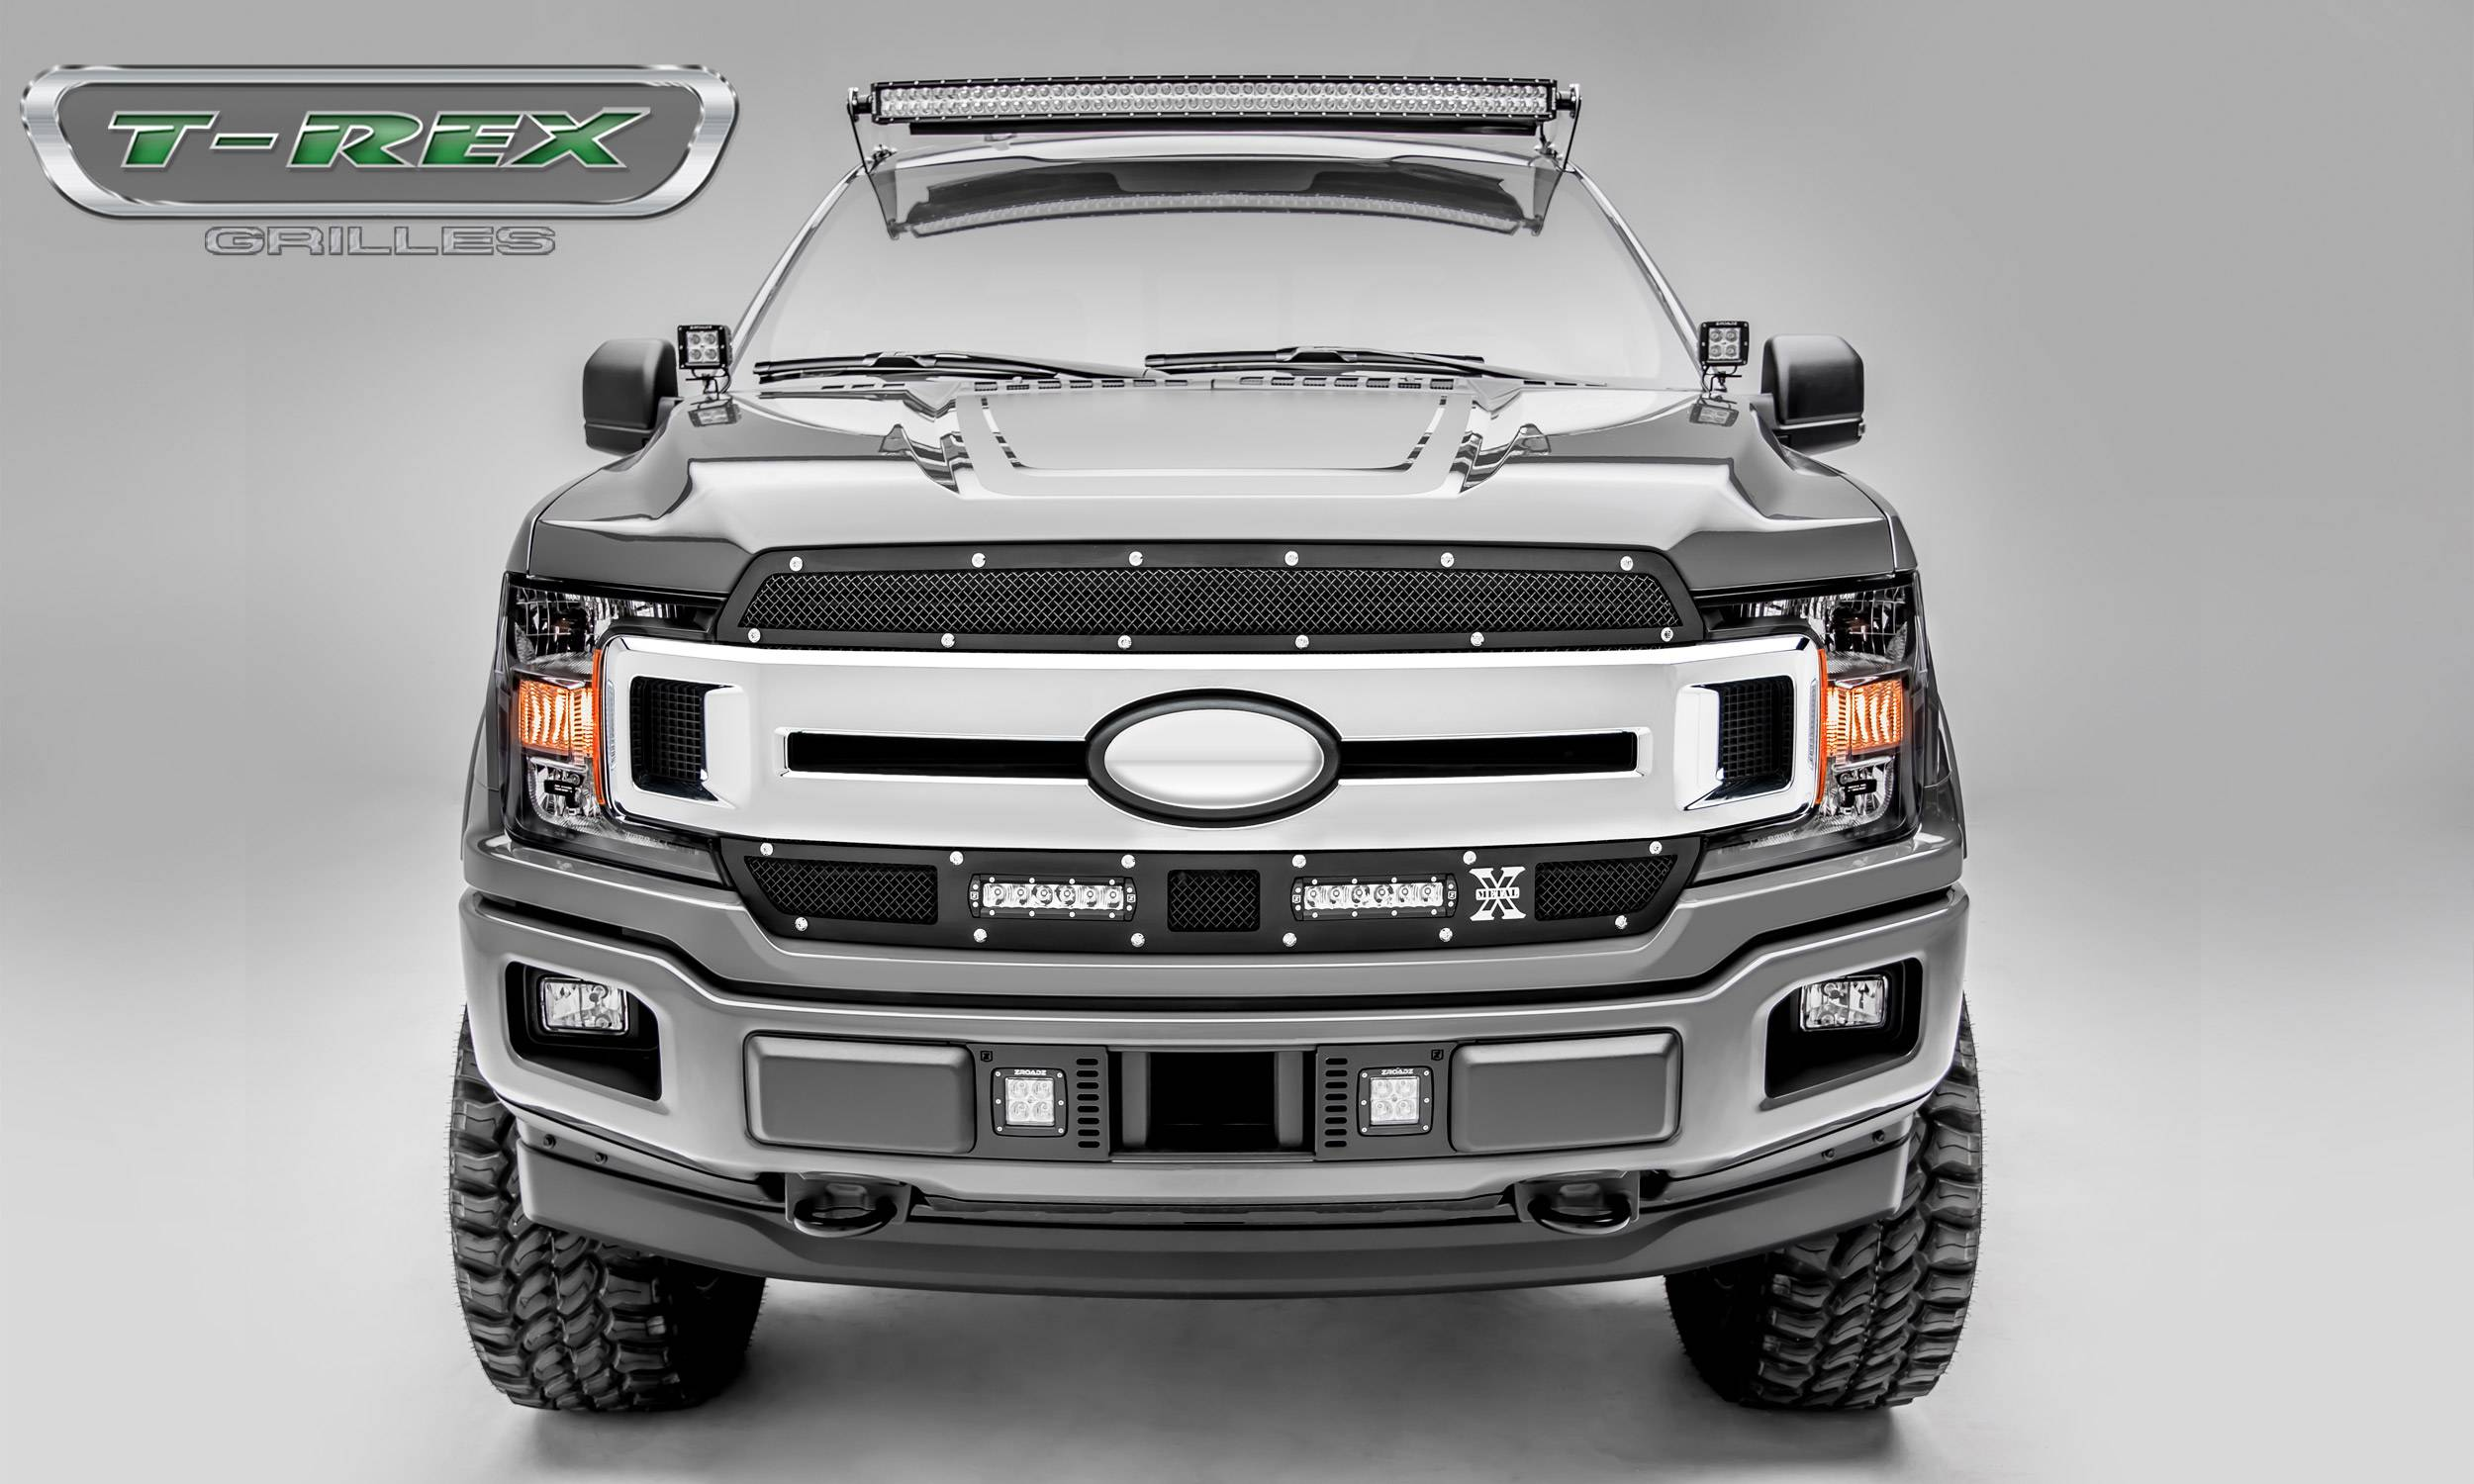 "T-REX Grilles - Ford F-150 - Torch Series - 2 PC Main Grille Overlay / Insert w/ (2) 6"" LED Light Bars - Chrome Studs and Black Powdercoat Finish - Pt # 6315691"